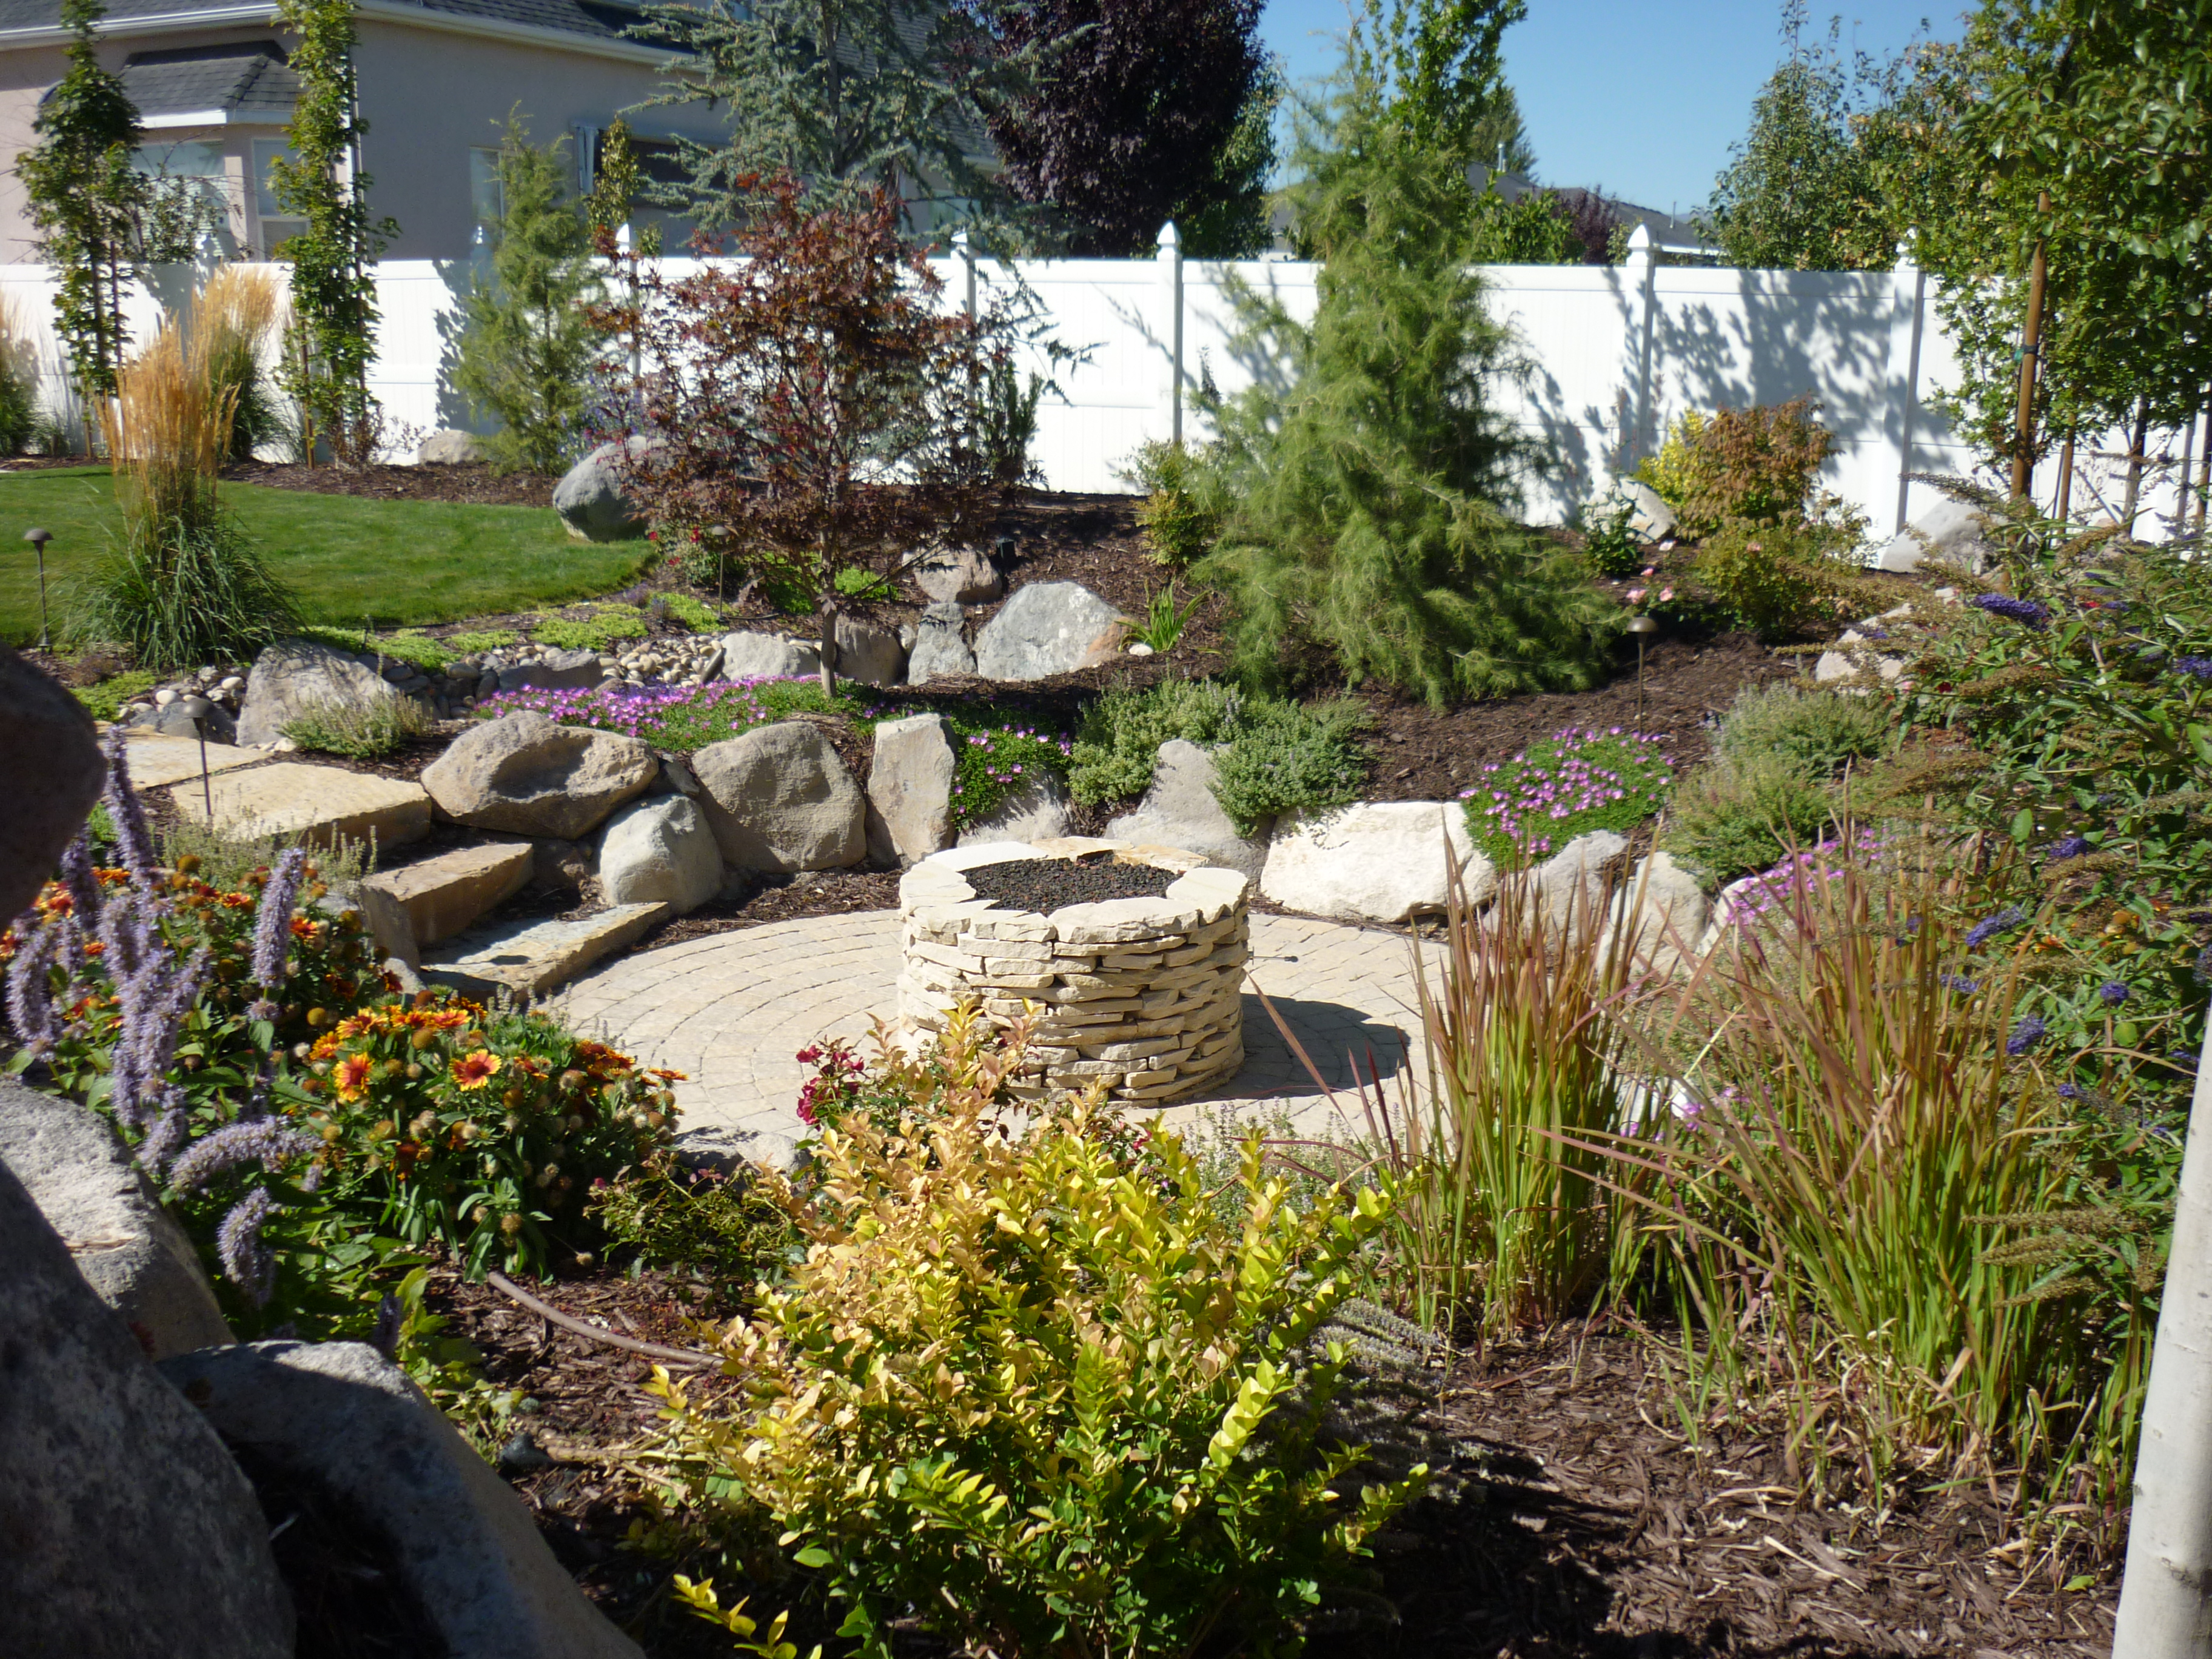 Water And Fire Features For Backyards : Landscapers, landscaping, Swimming pools and construction in Salt lake